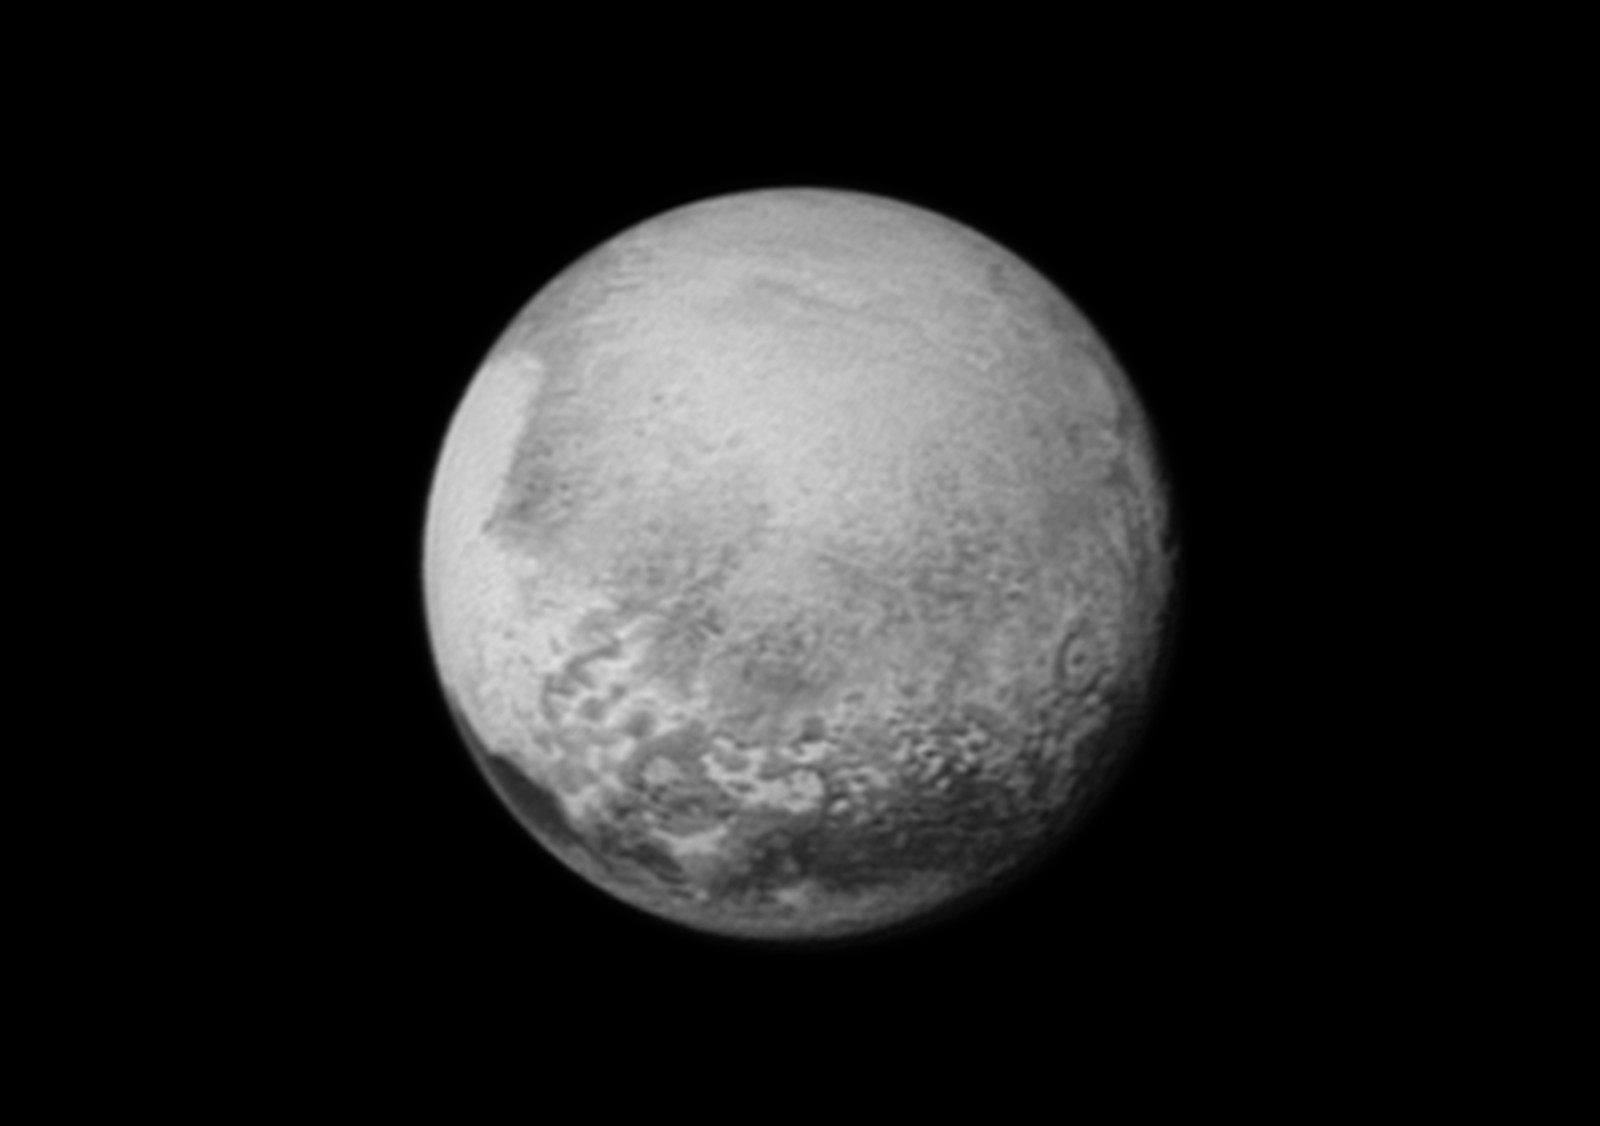 NASA's New Horizons mission to Pluto, explained - Vox